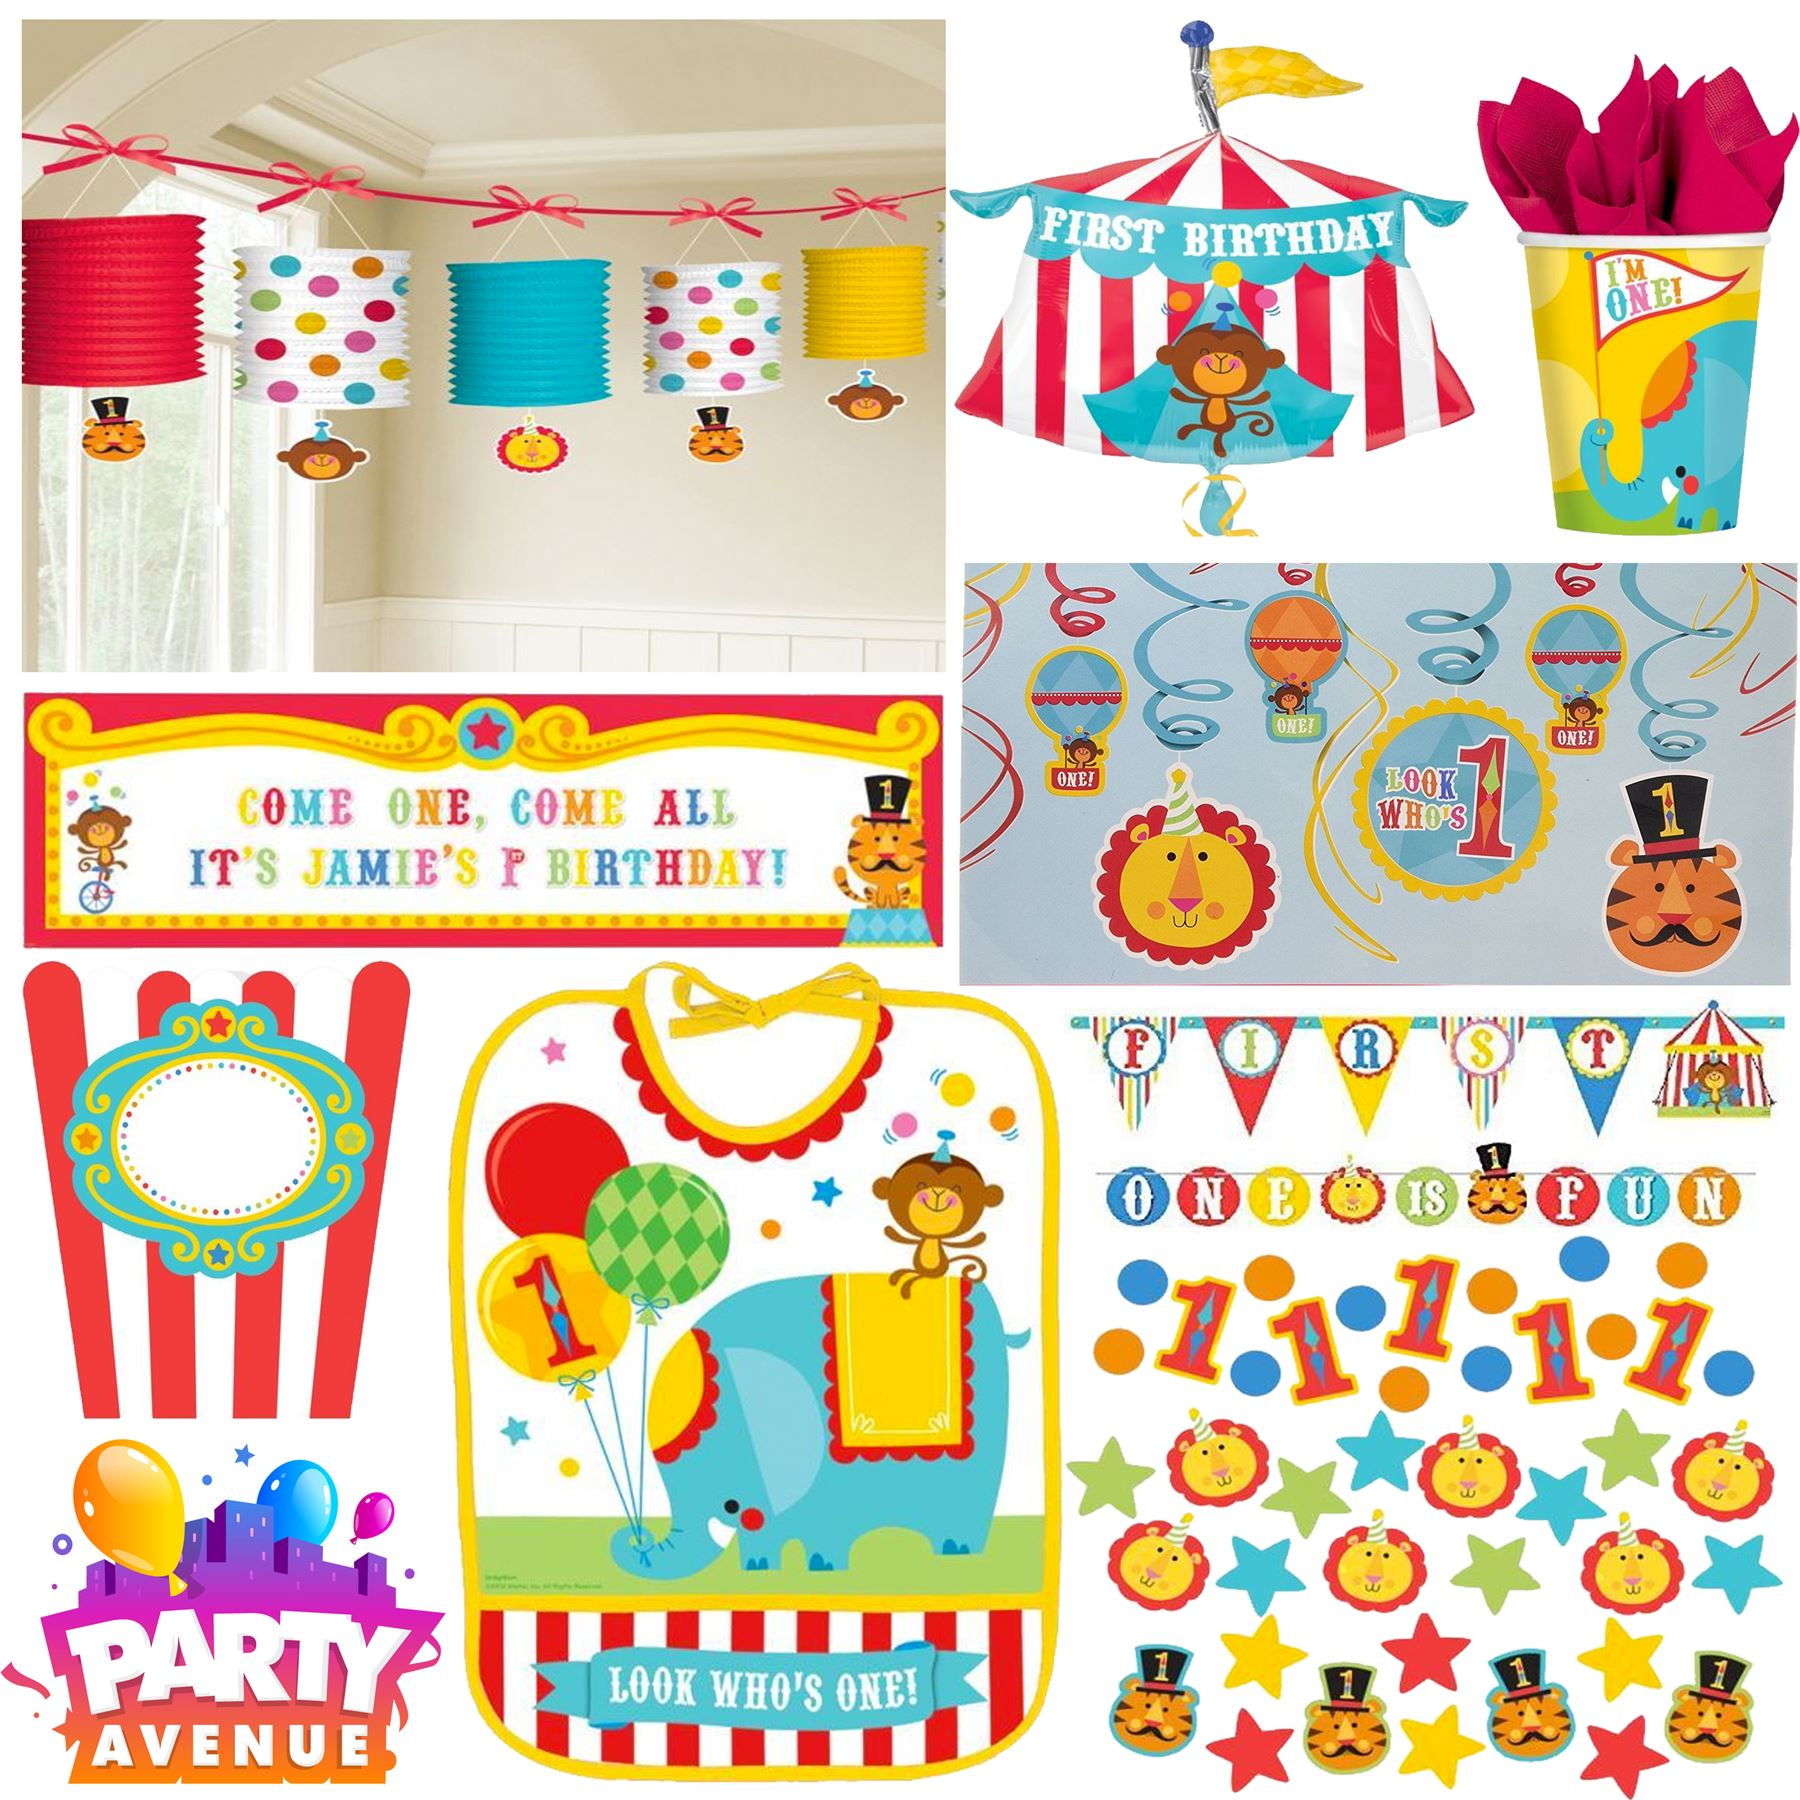 Fisher Price Circus Decorations Tableware Balloons 1st Birthday Party